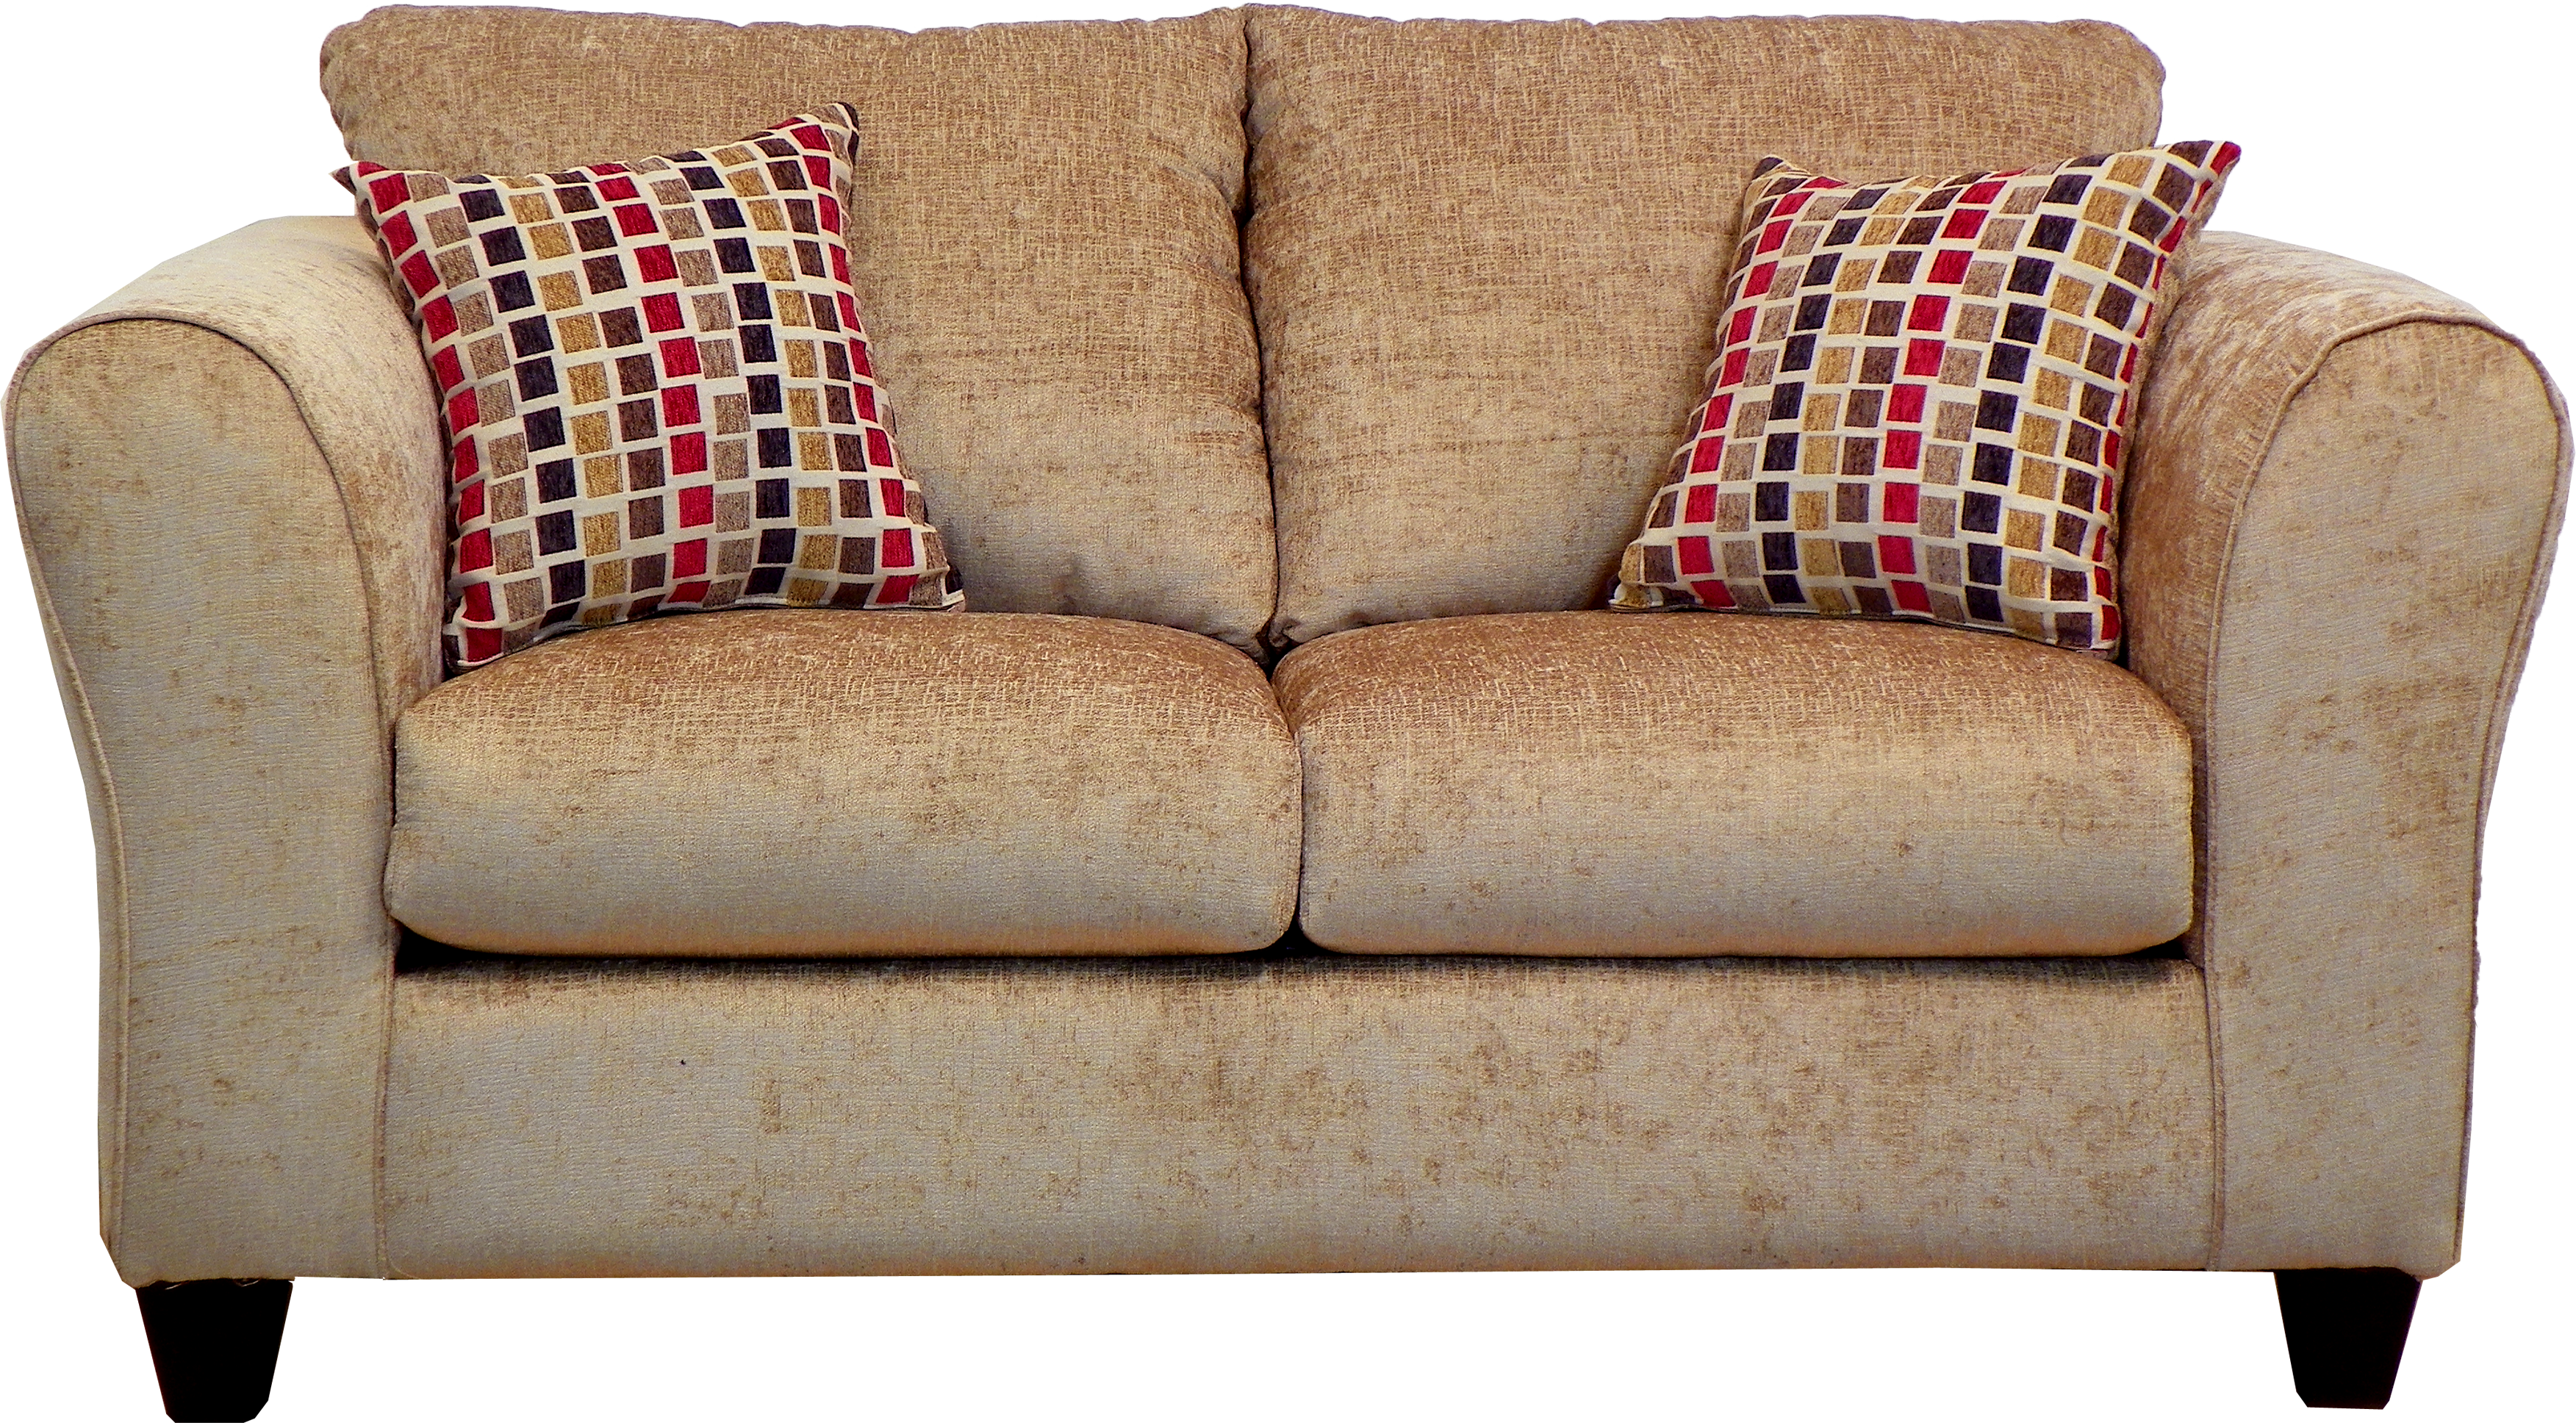 Couch clipart free vector. Sofa bed on dumielauxepices